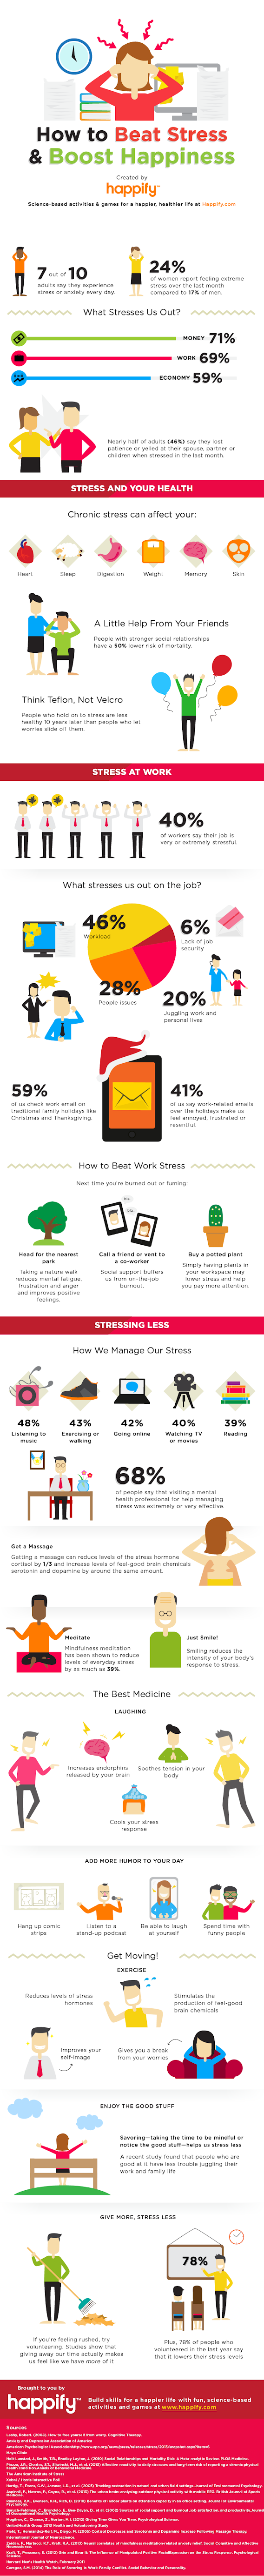 The Fight Against Stress #Infographic